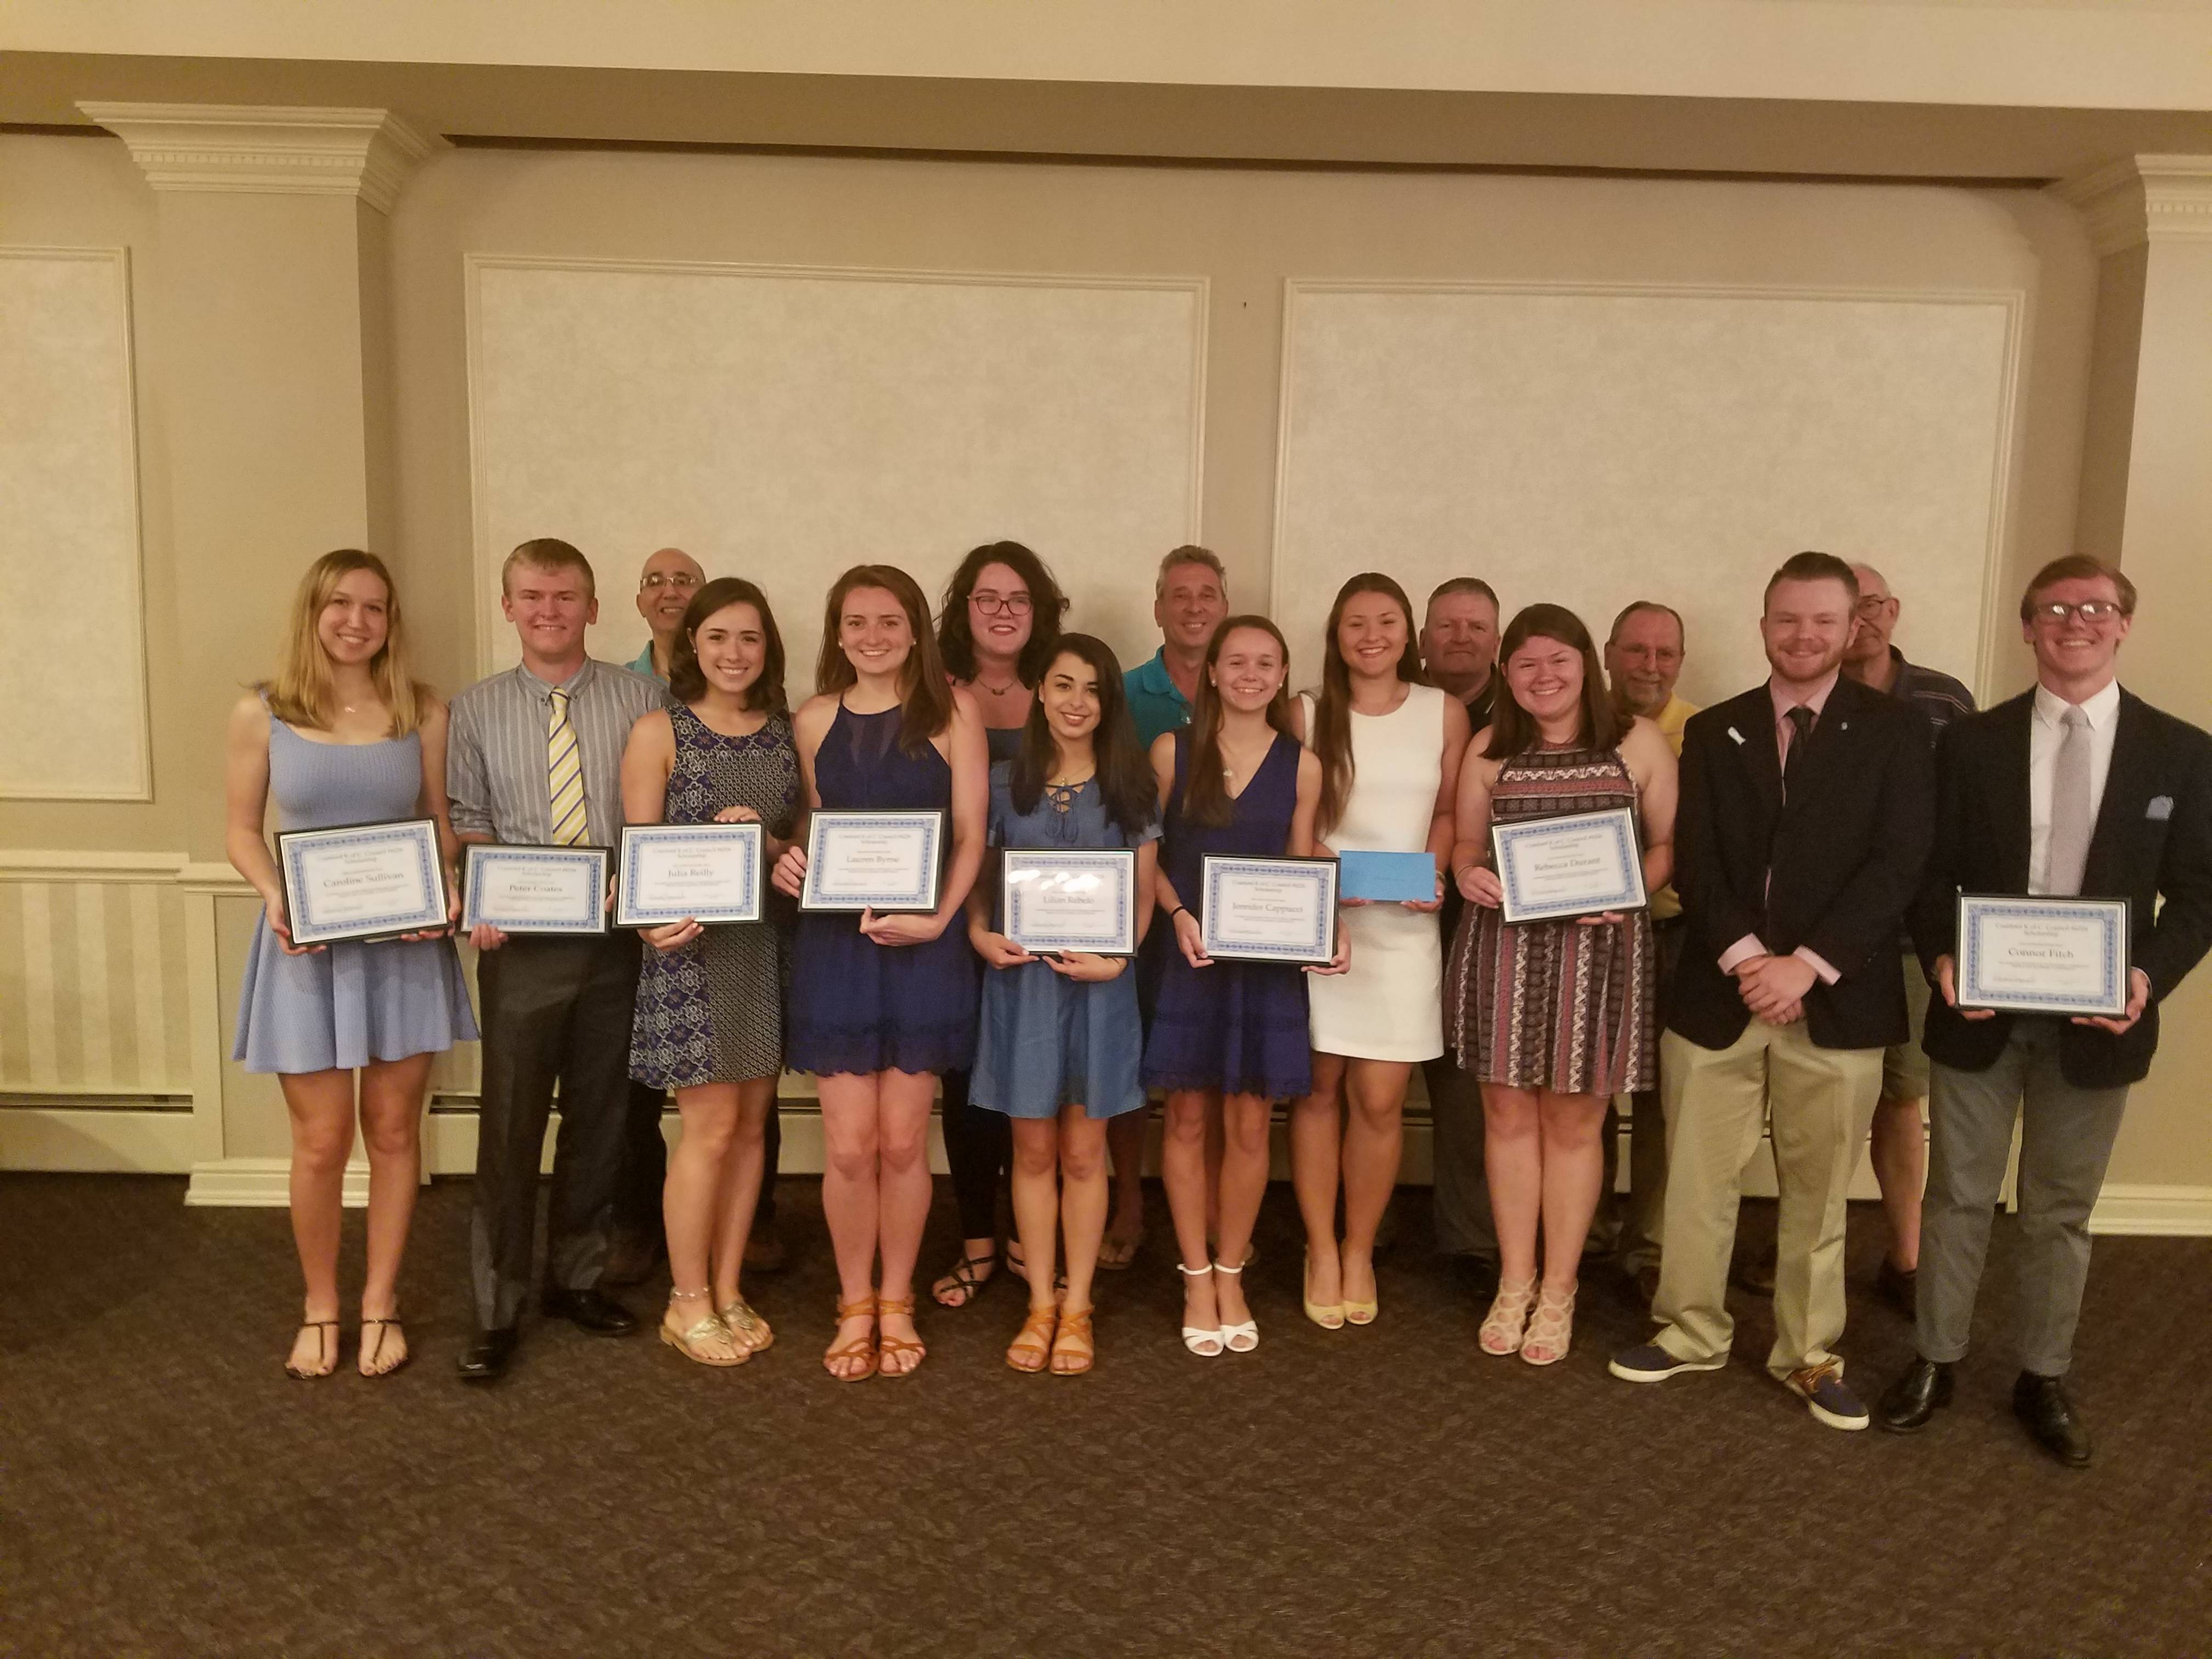 14a4f69adbeba1b74713_Cranford_K_of_C_2017_Scholarship_Winners.jpg